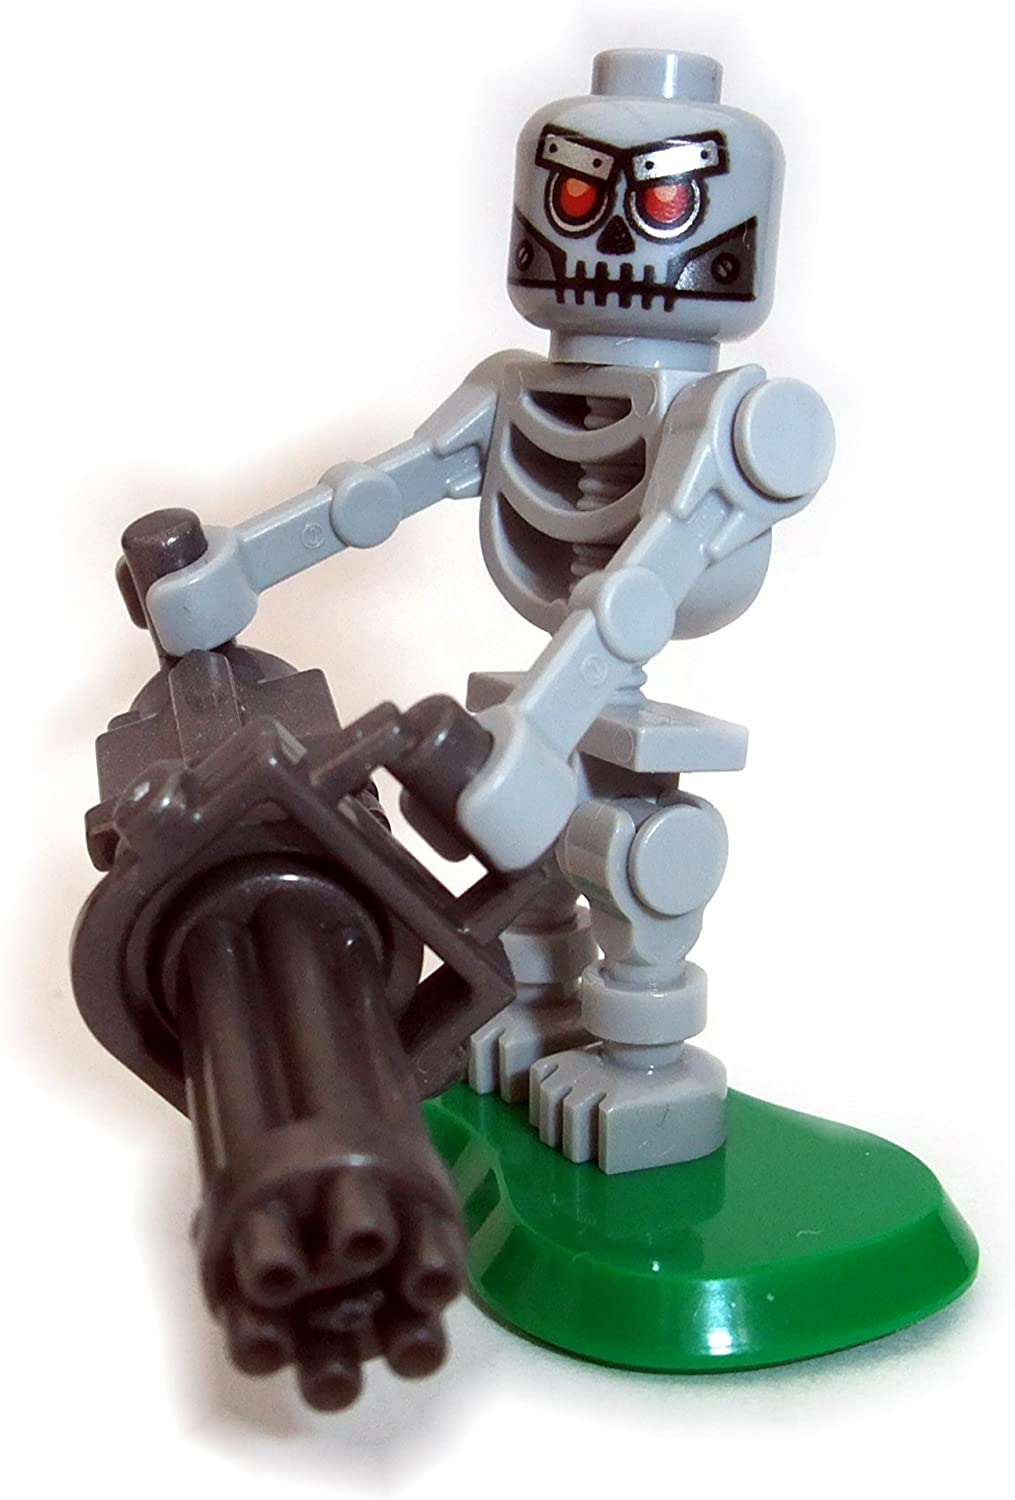 LEGO TERMINATOR MACHINE GAMING MINIFIGURE FIGURE ROBOT MADE OF GENUINE LEGO